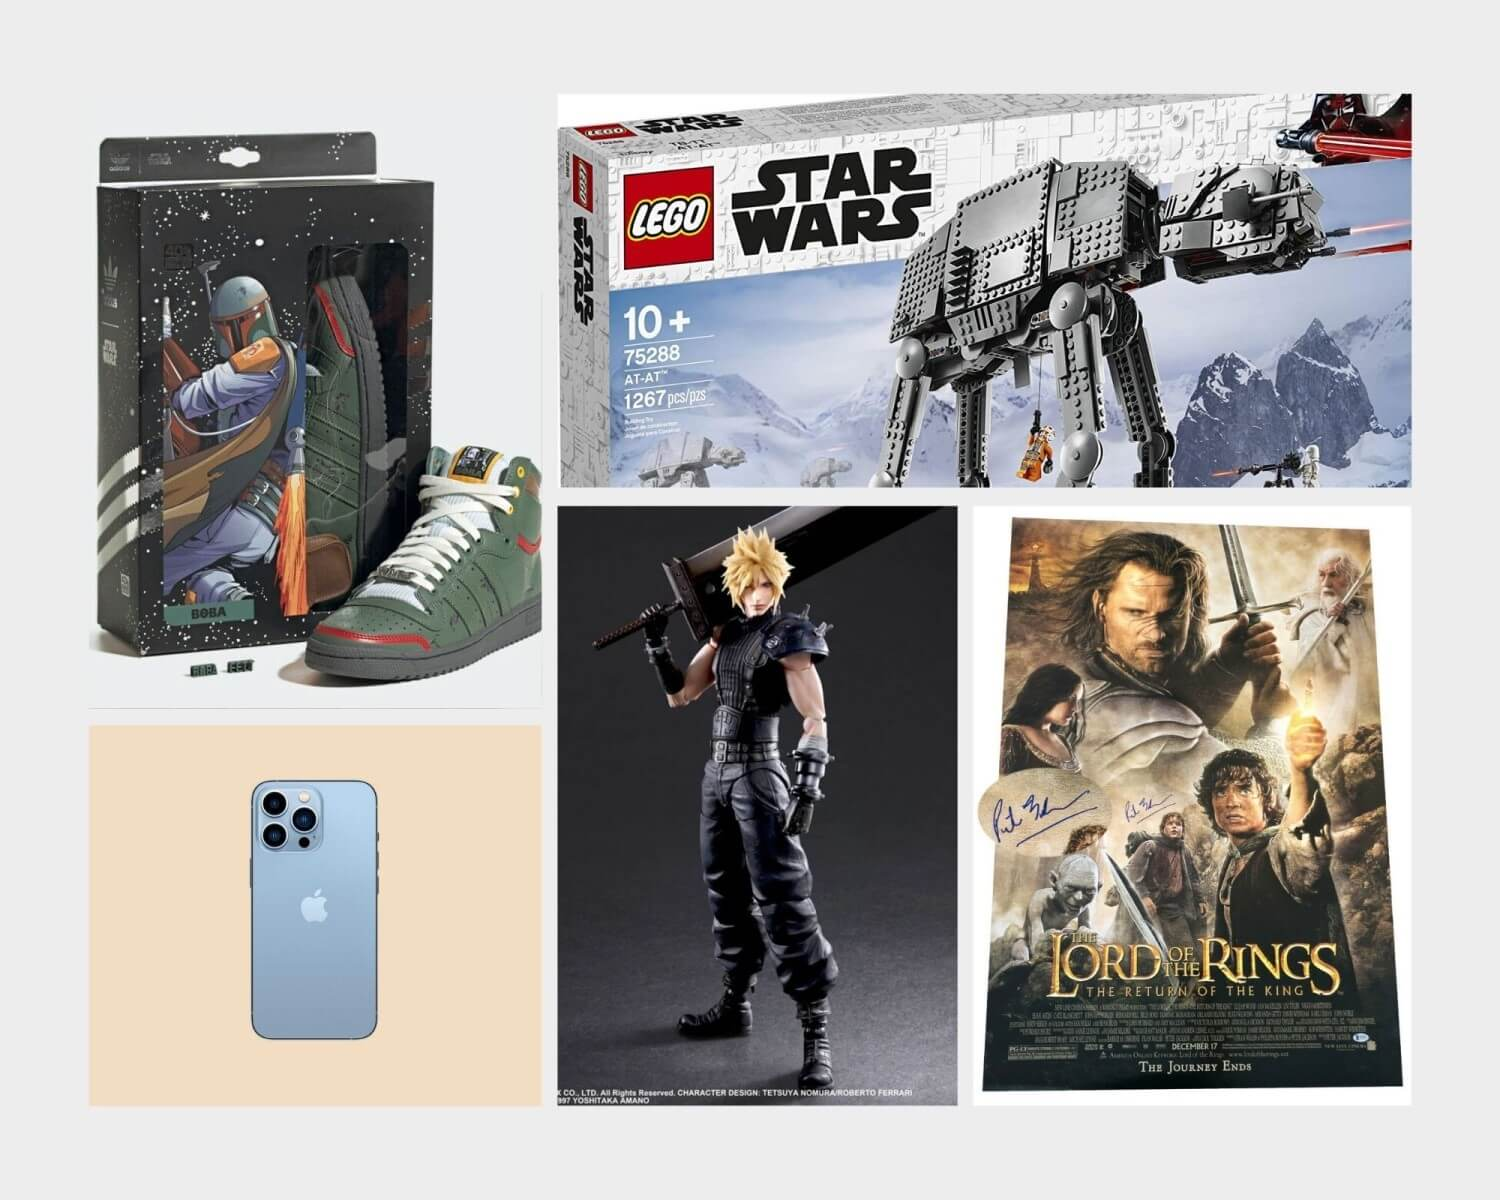 A collage of prizes you could win, including an iPhone and Mandalorian sneakers